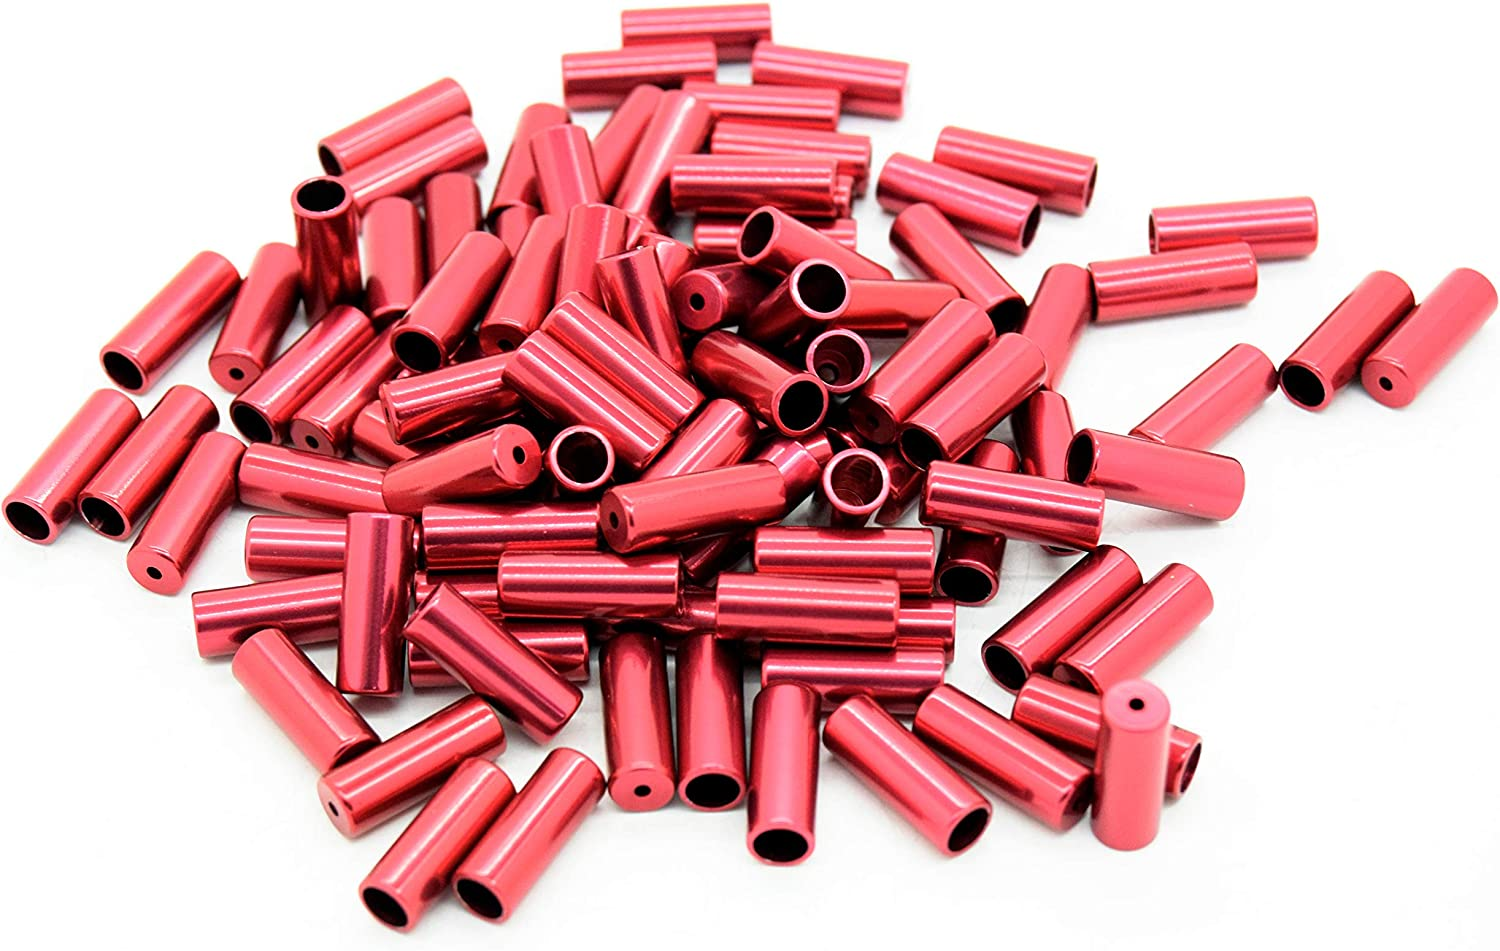 OFFer Transfil High material Unisex's Gear Cable Outer Ferrule Red Pack 100 4mm of